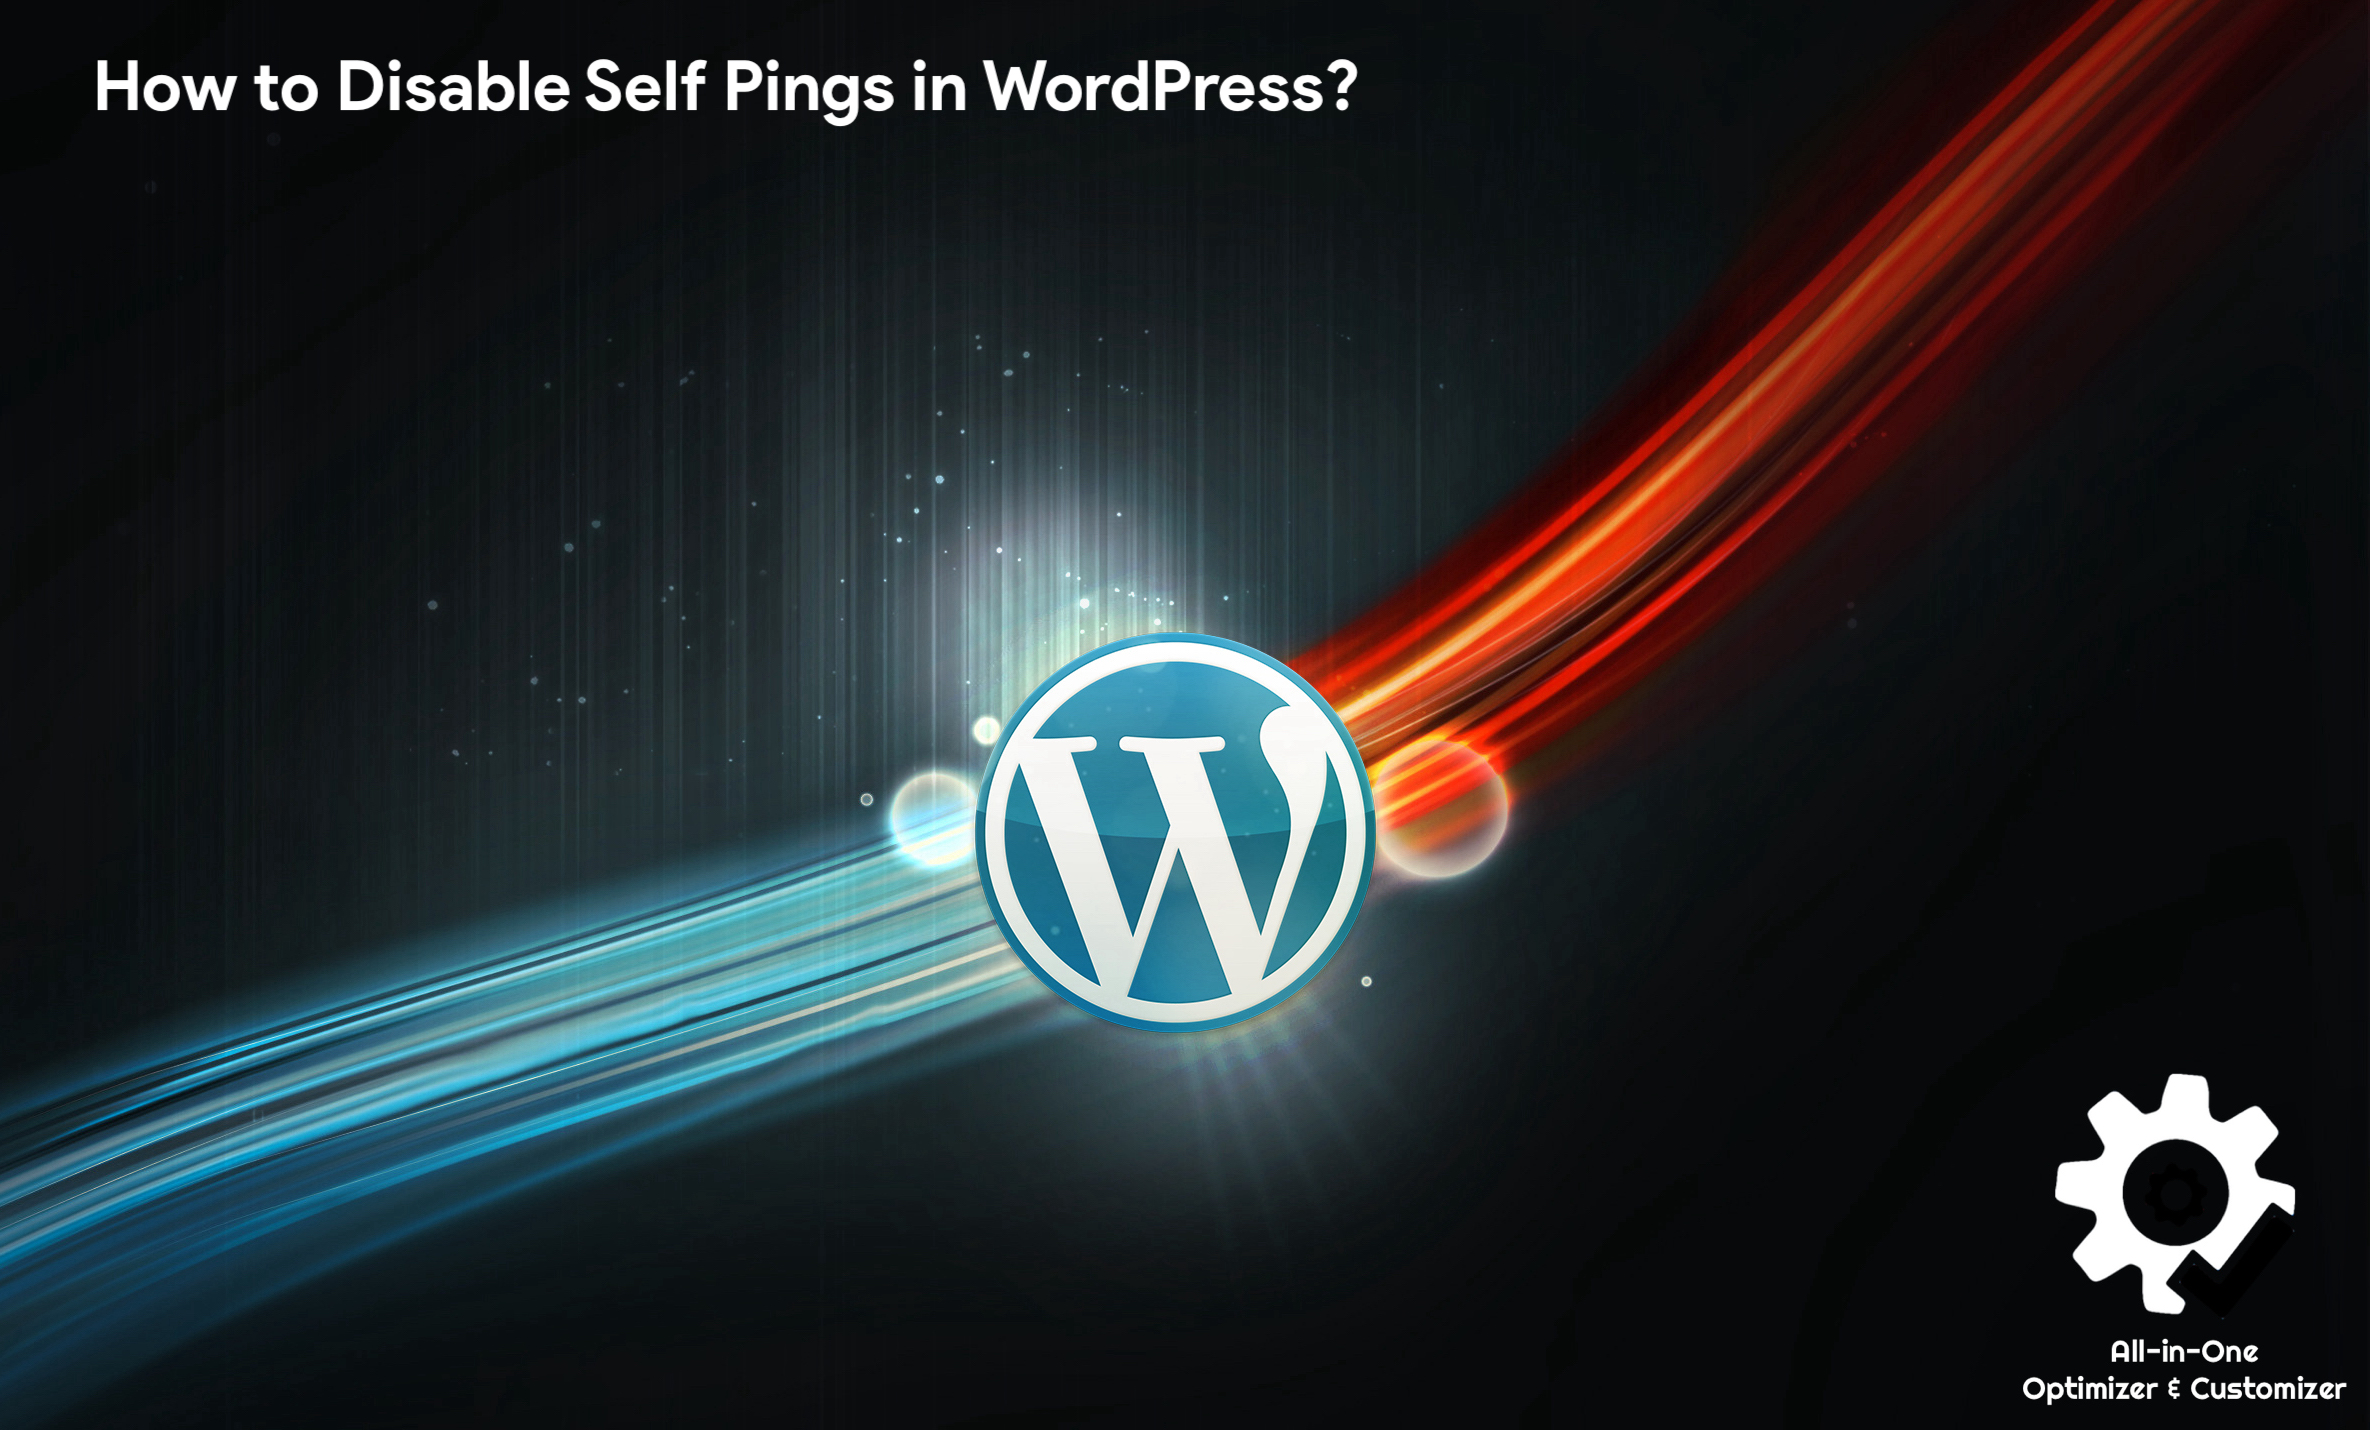 How to Disable Self Pings in WordPress?